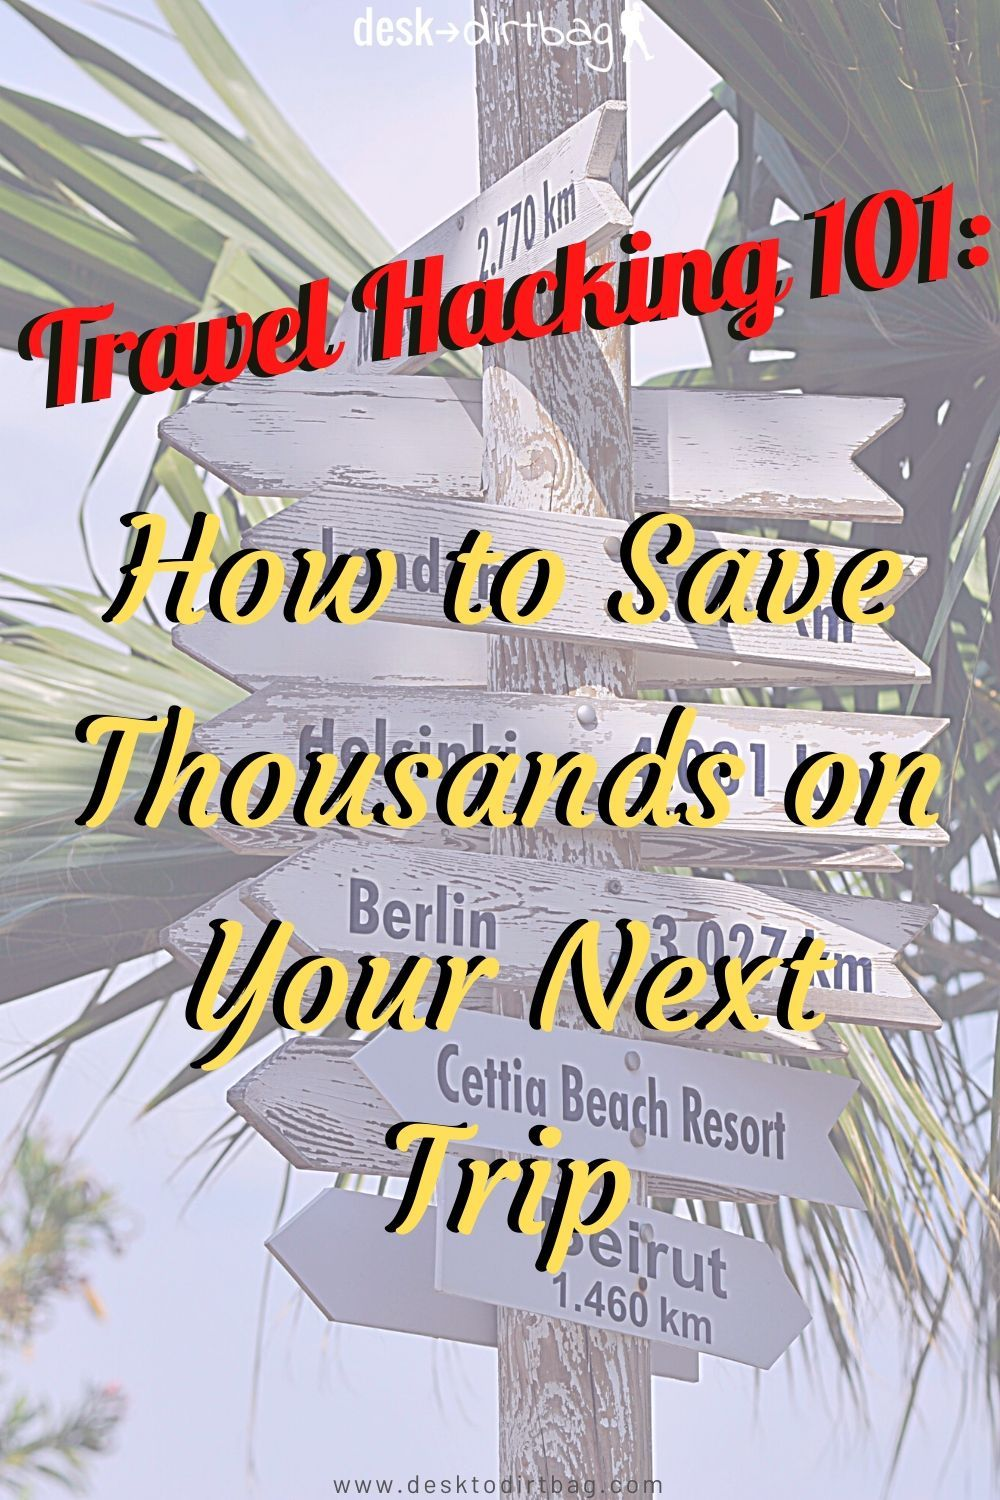 If you love to travel but haven't started travel hacking, then you're spending way too much to travel. Get started today with this travel hacking 101 guide. #hacking #travelhacking #budgettravel #travelhacks #howtosavemoneytraveling